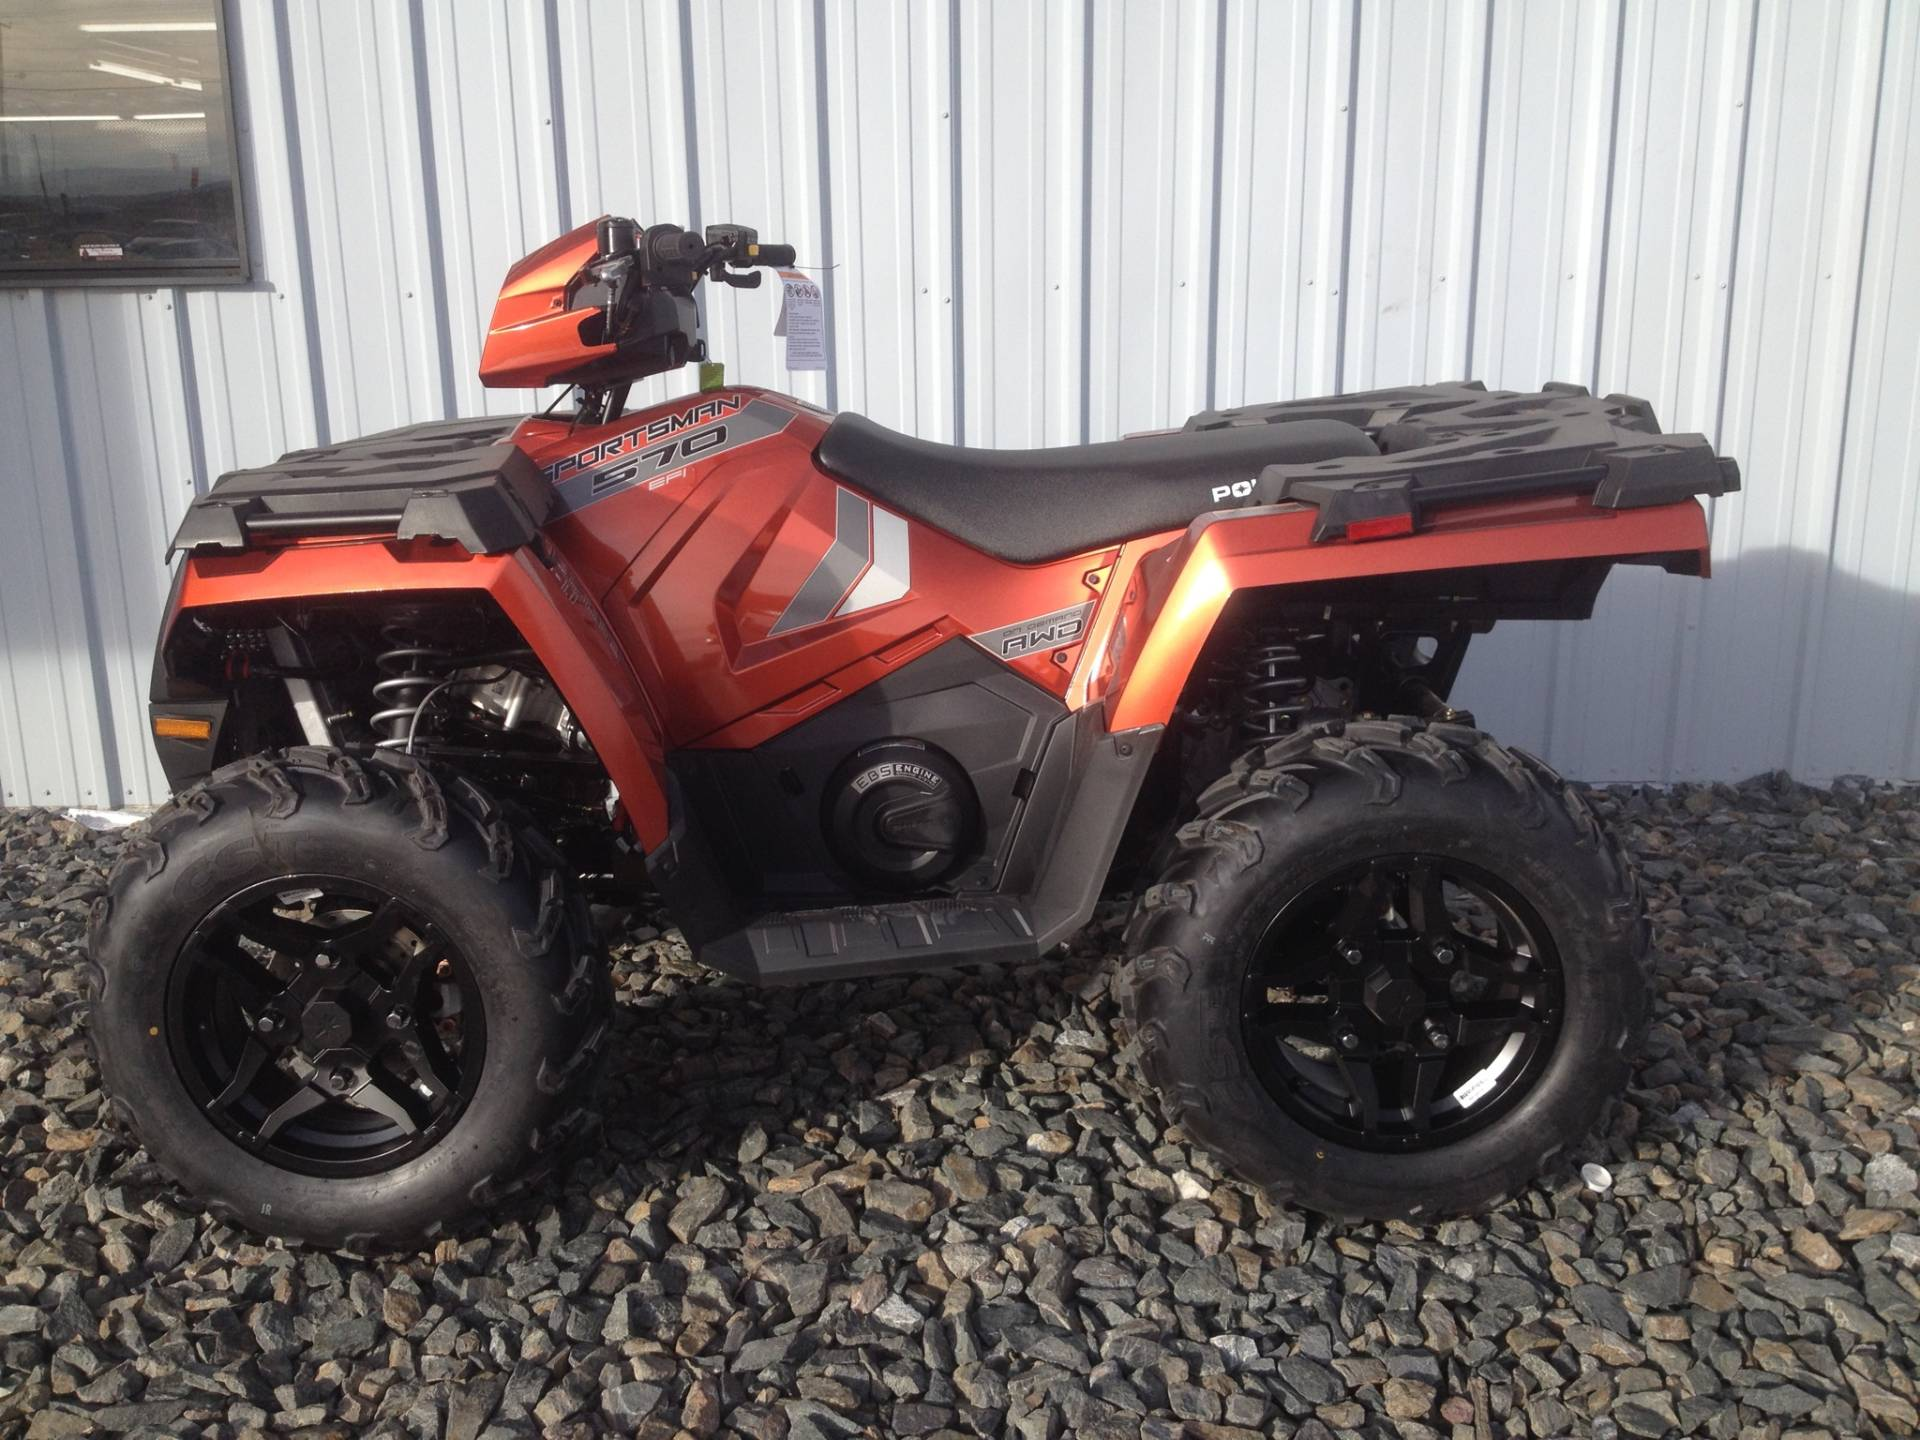 2020 Polaris Sportsman 570 Premium in Scottsbluff, Nebraska - Photo 1